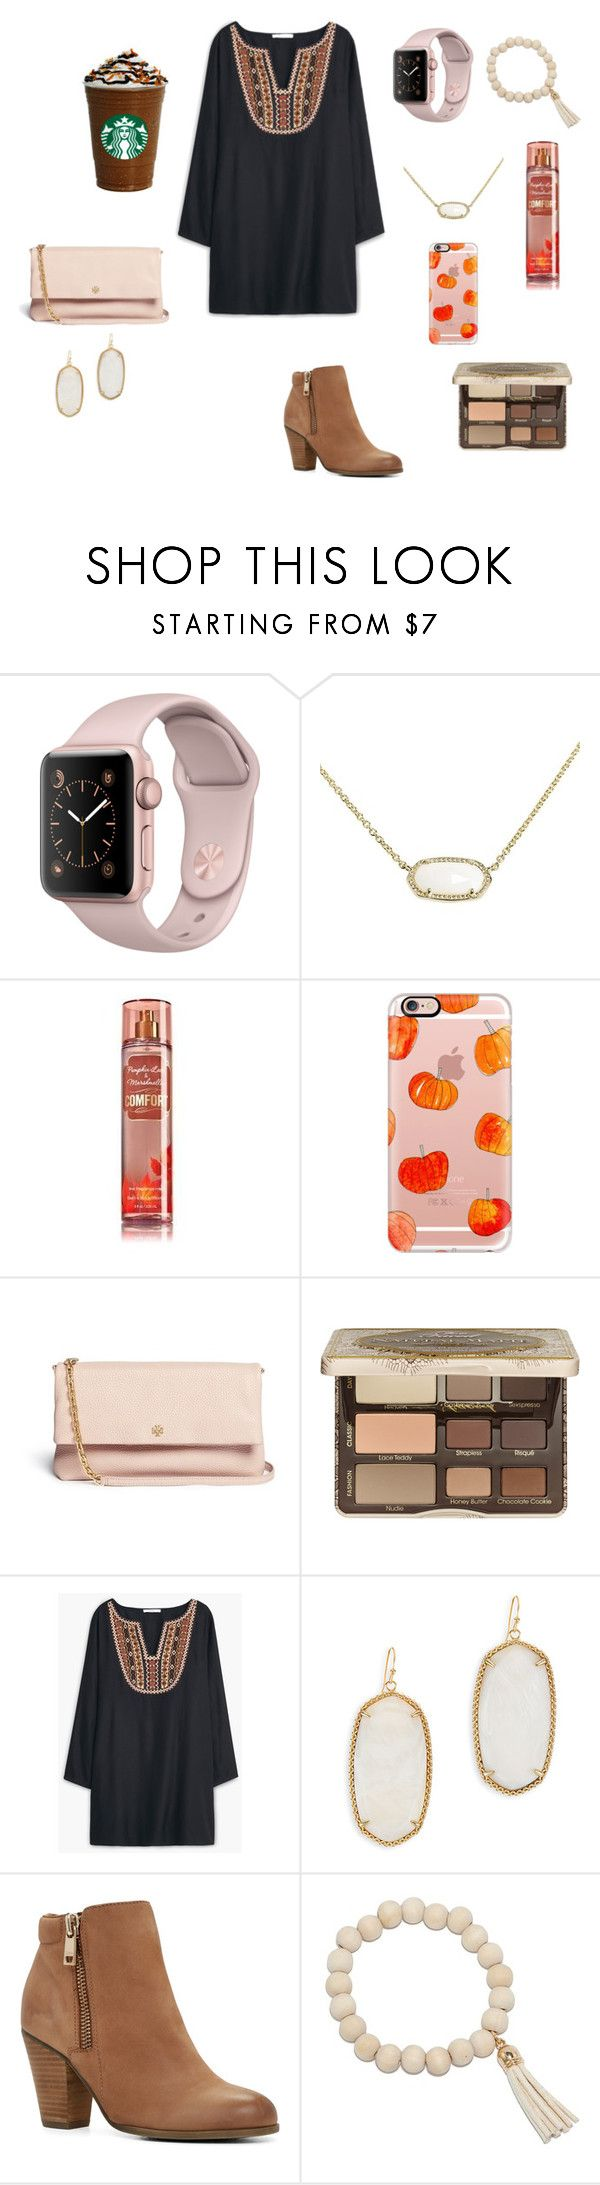 """""""Church"""" by mae343 on Polyvore featuring Kendra Scott, Casetify, Tory Burch, Too Faced Cosmetics, MANGO, ALDO and LBD"""